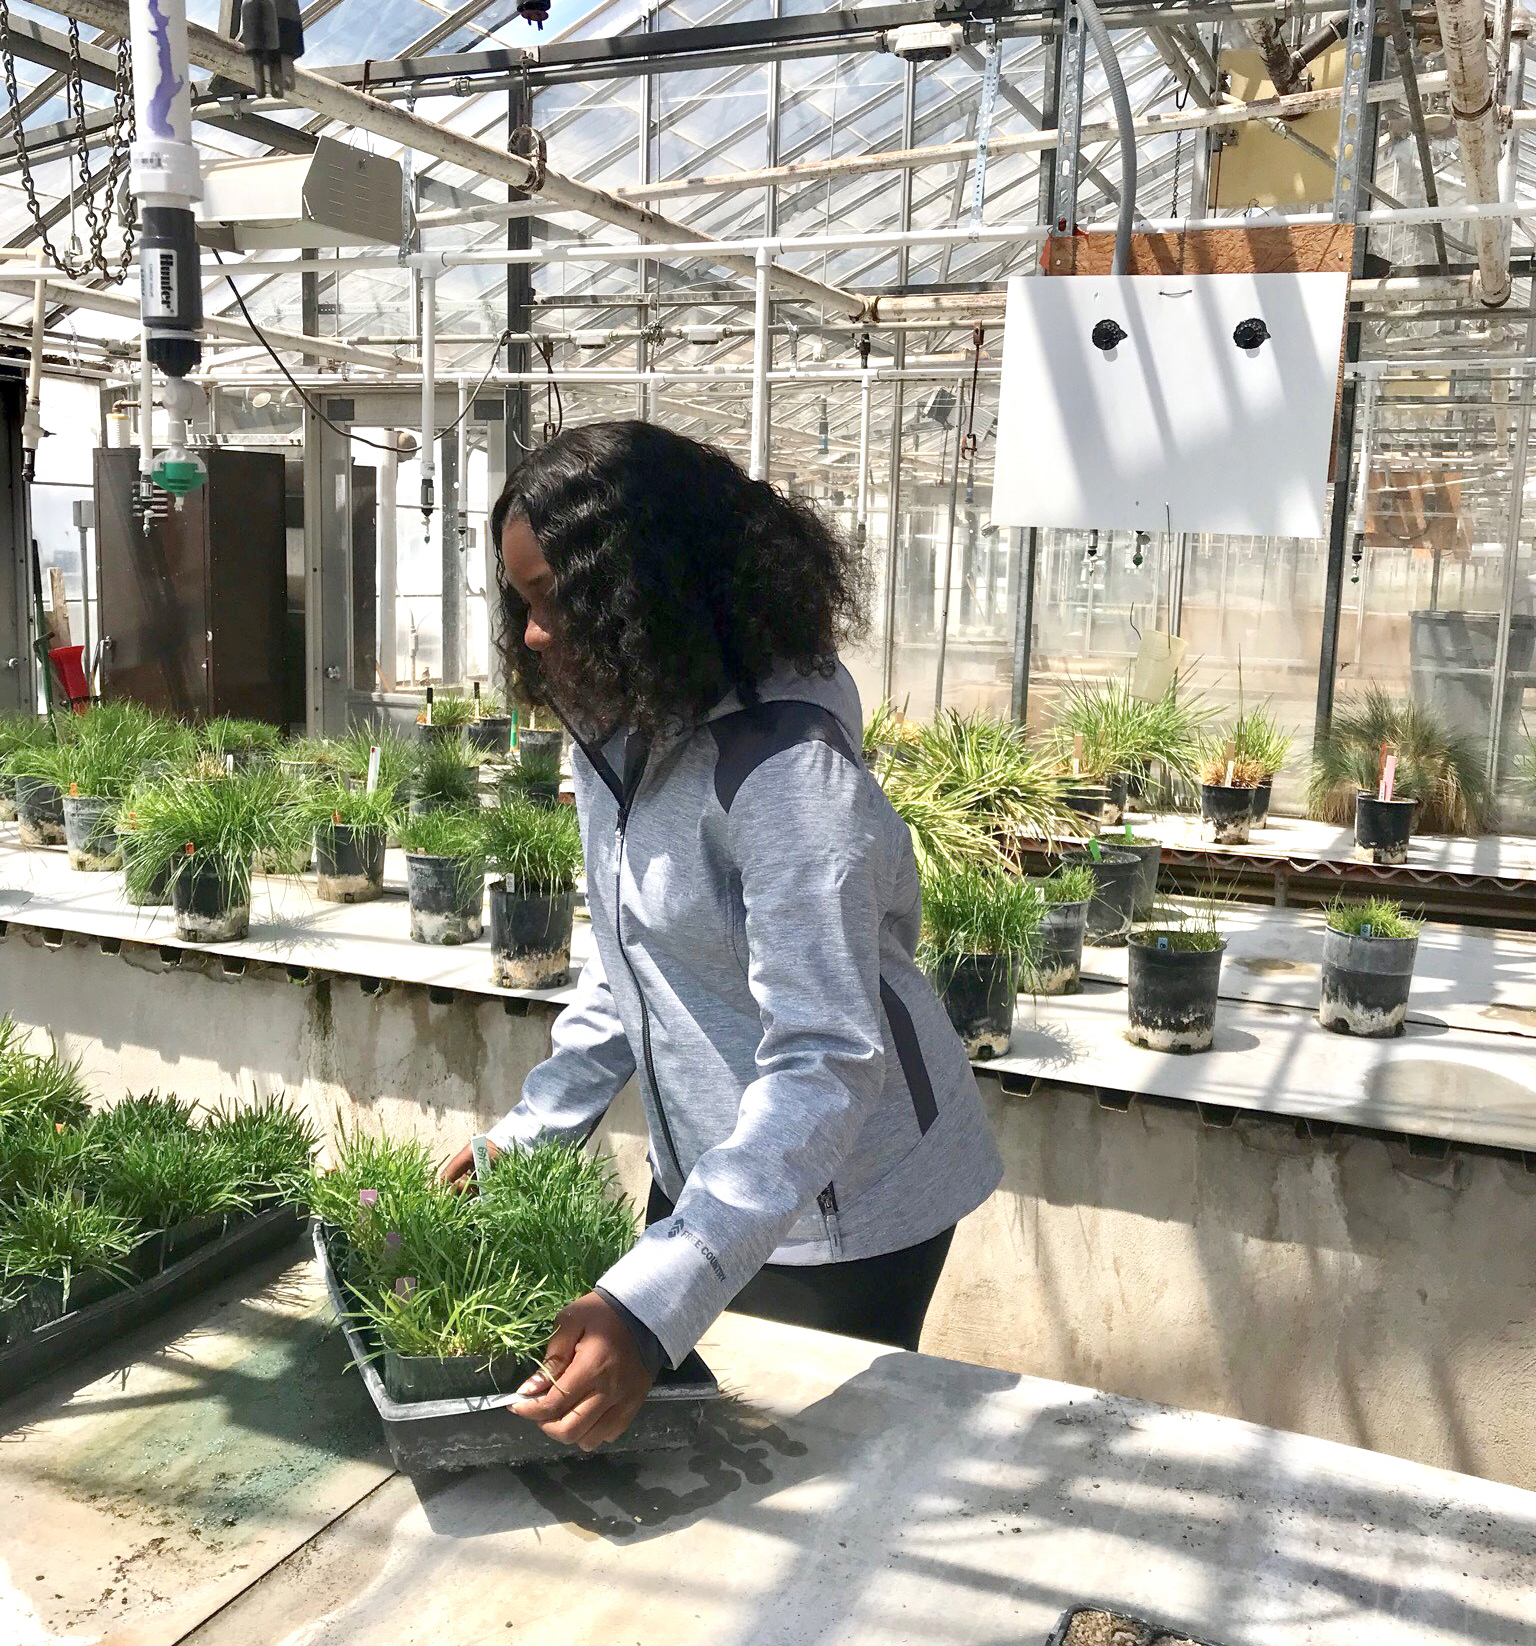 Alexandria Brown working with plants in greenhouse